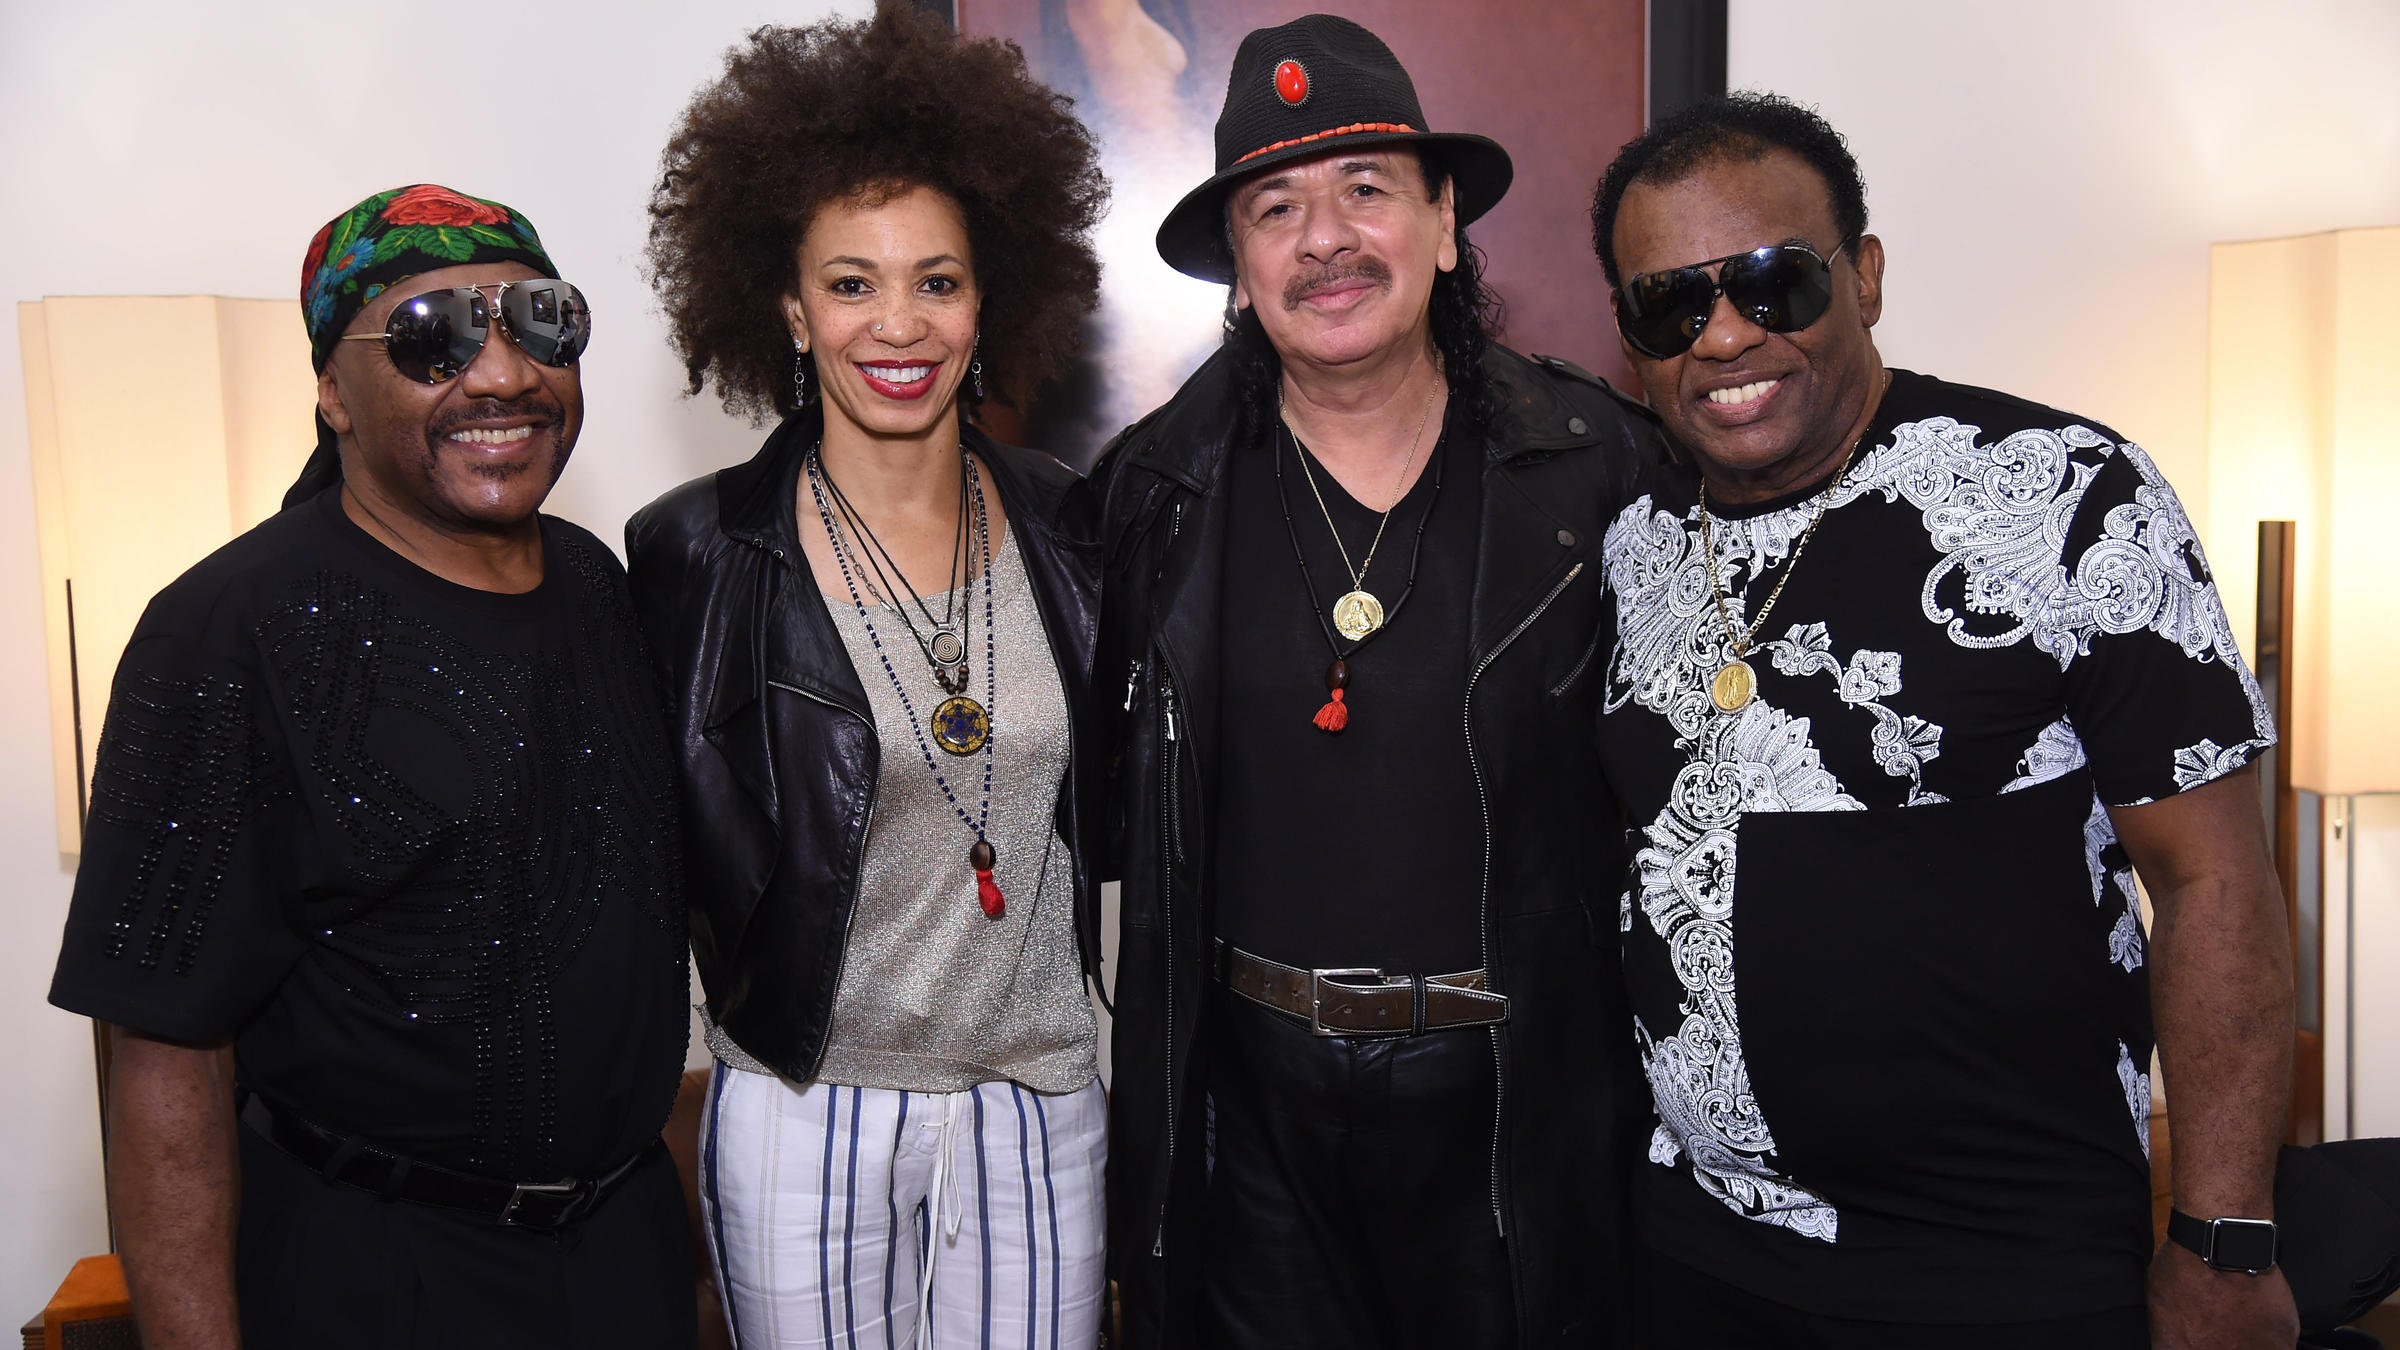 Santana And The Isley Brothers Come Together For 'Power Of